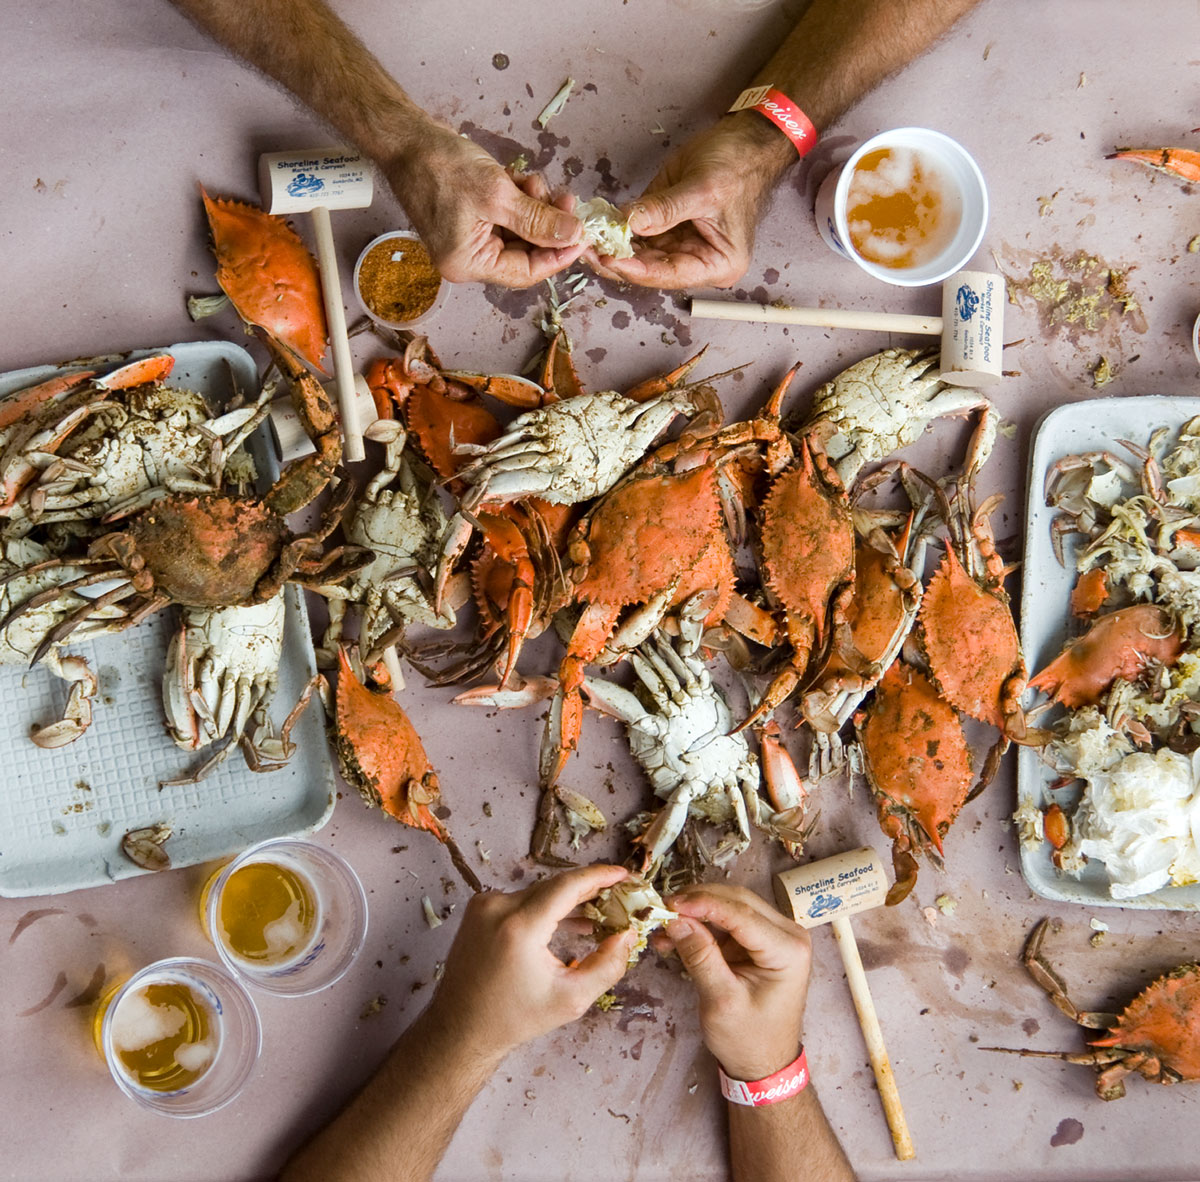 A crab boil feast strewn about a table as a person enjoys.